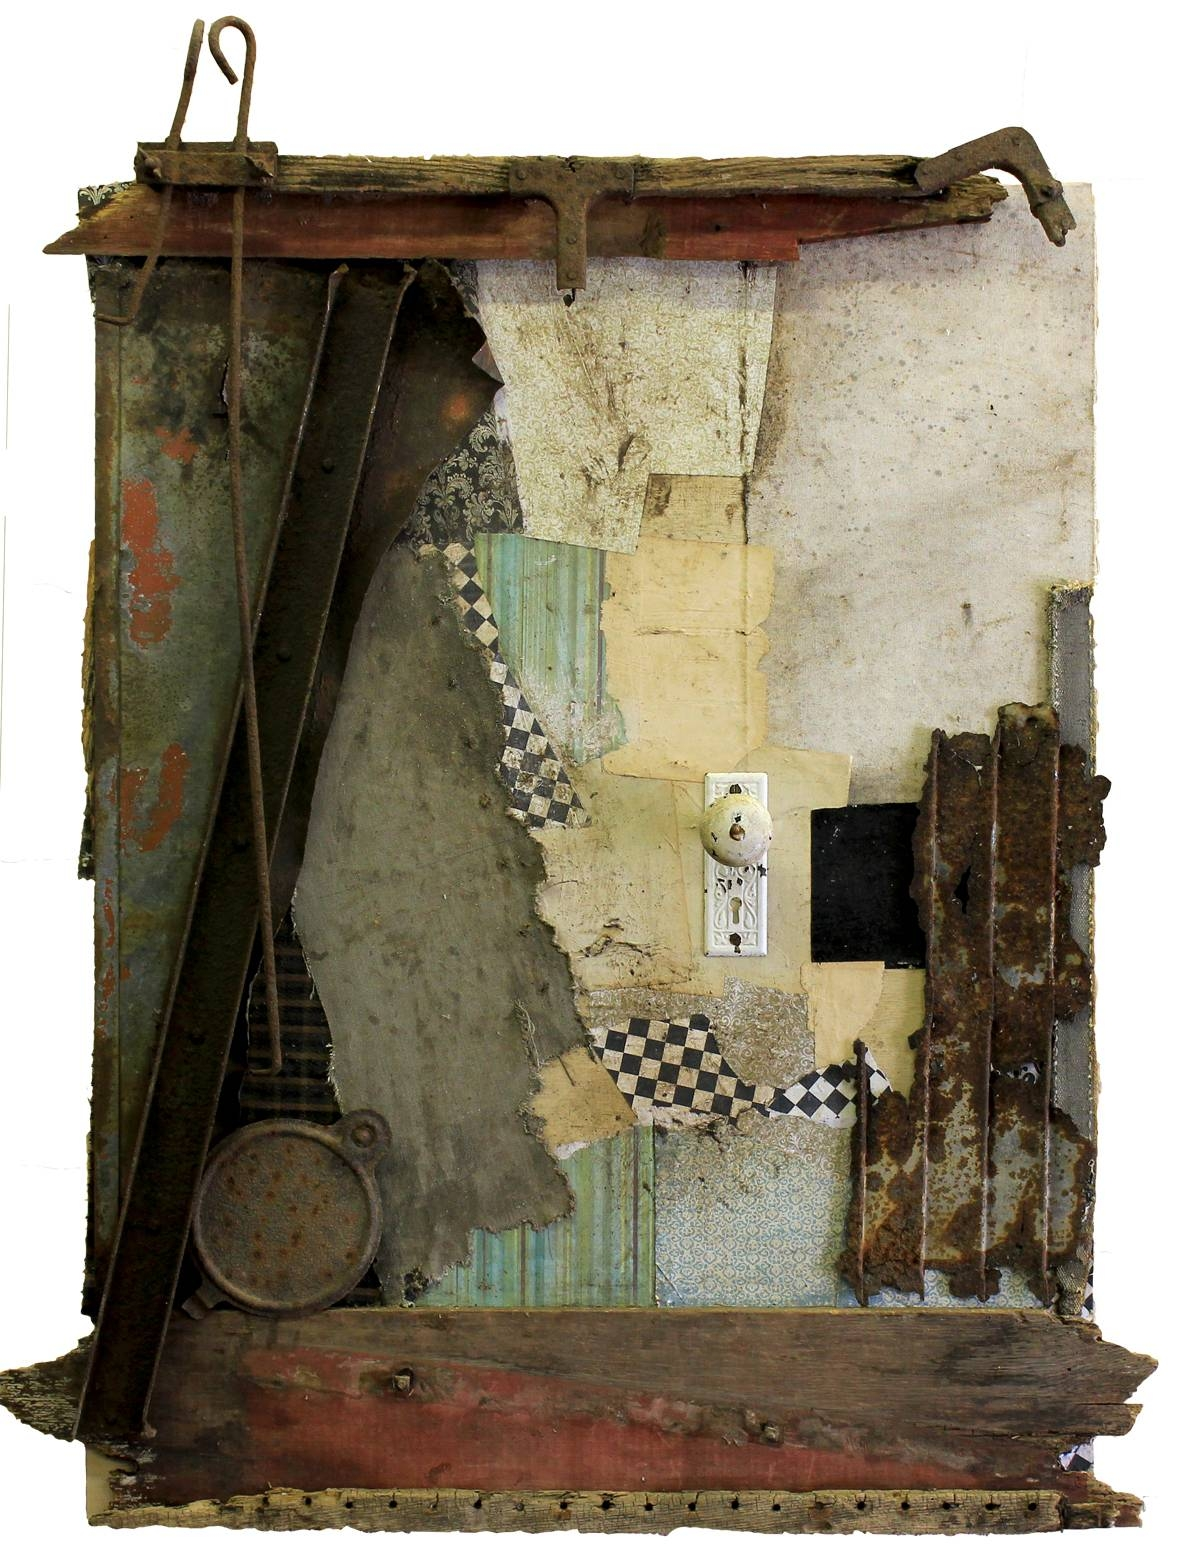 Original Mixed Media Vintage Industrial Art Assemblagemichel Throughout Recent Vintage Industrial Wall Art (View 12 of 20)